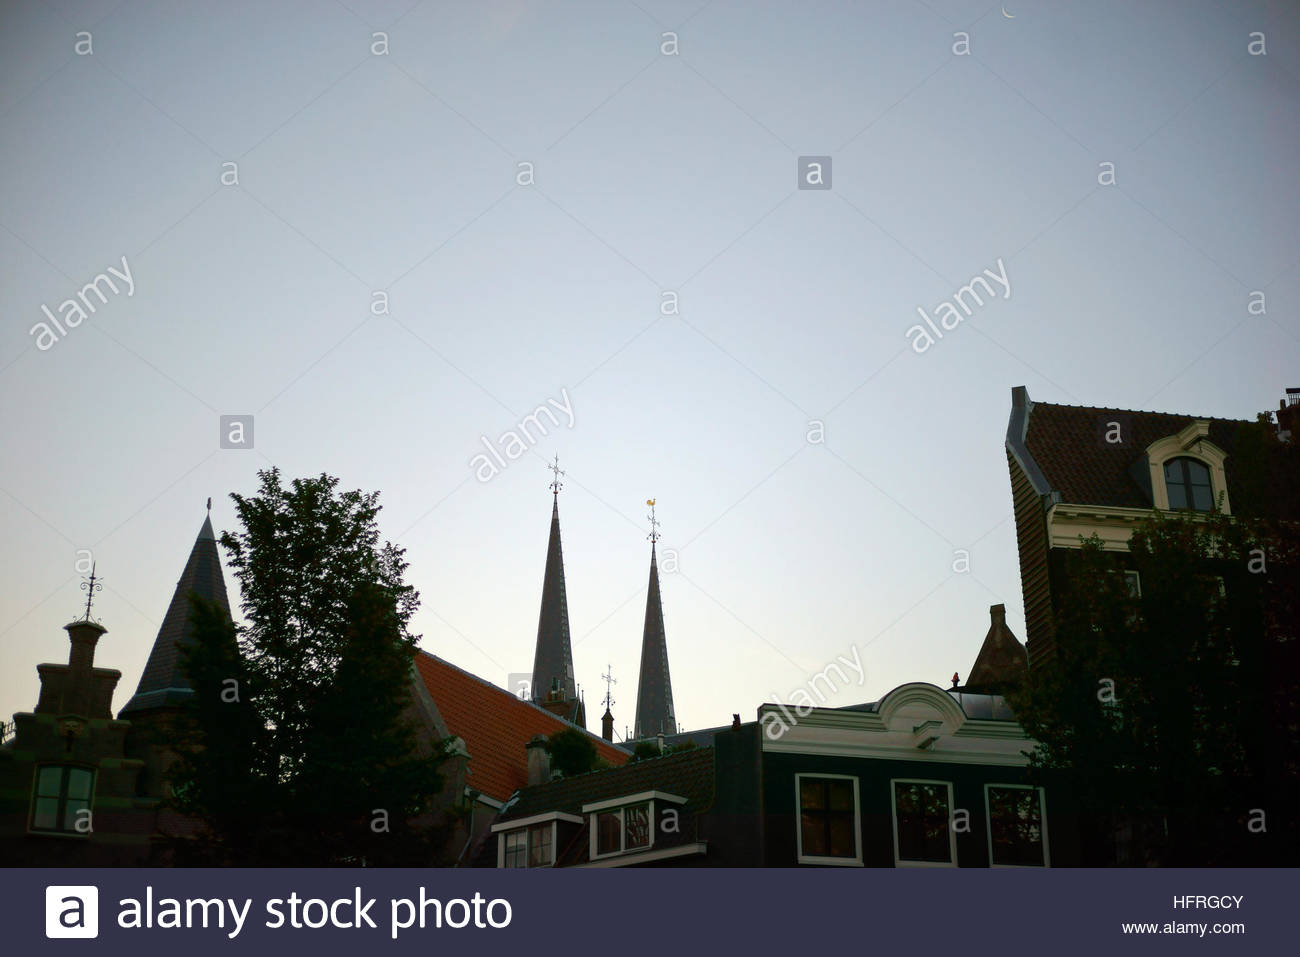 Sunrise over the rooftops of canal houses in Amsterdam, Netherlands. - Stock Image